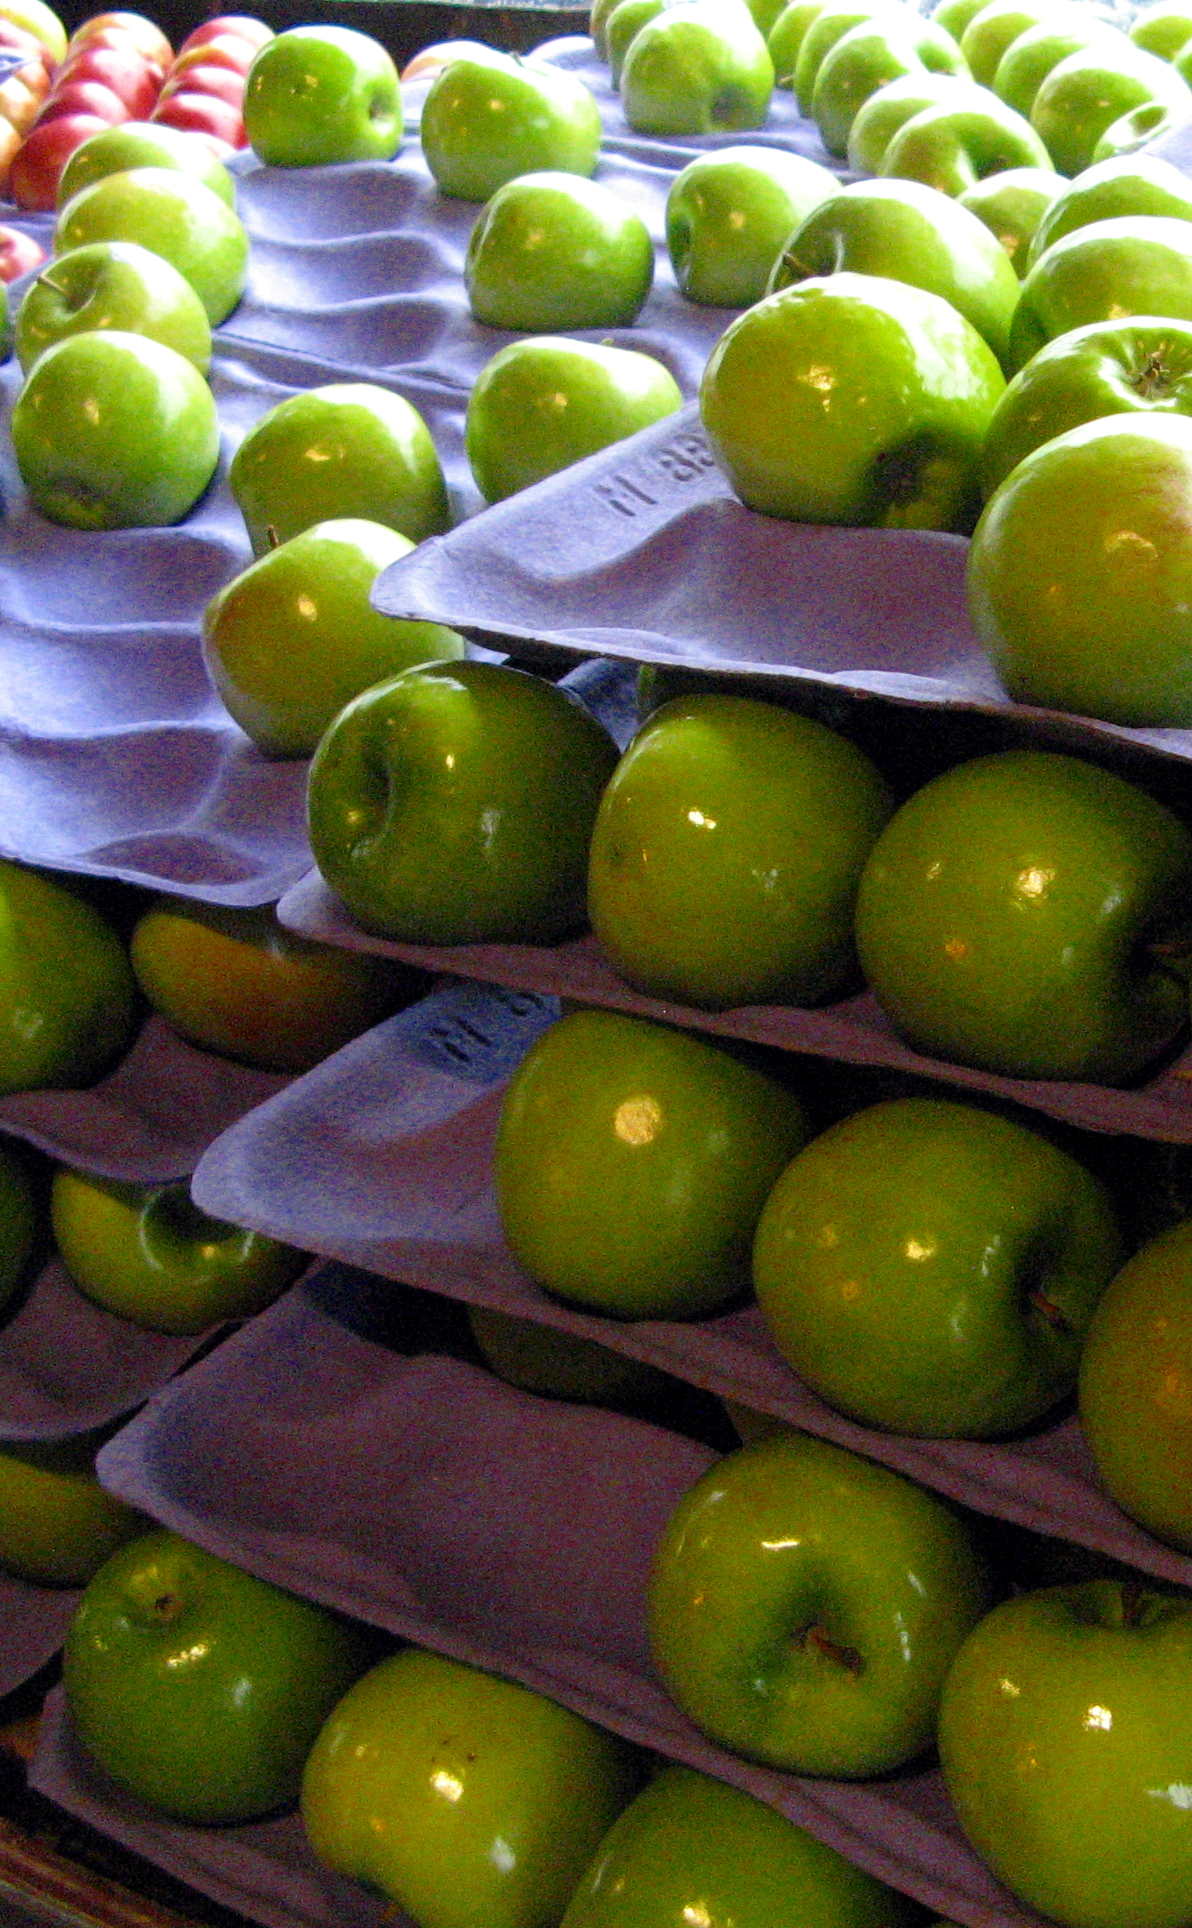 Free photograph; green, apples, grocery, store